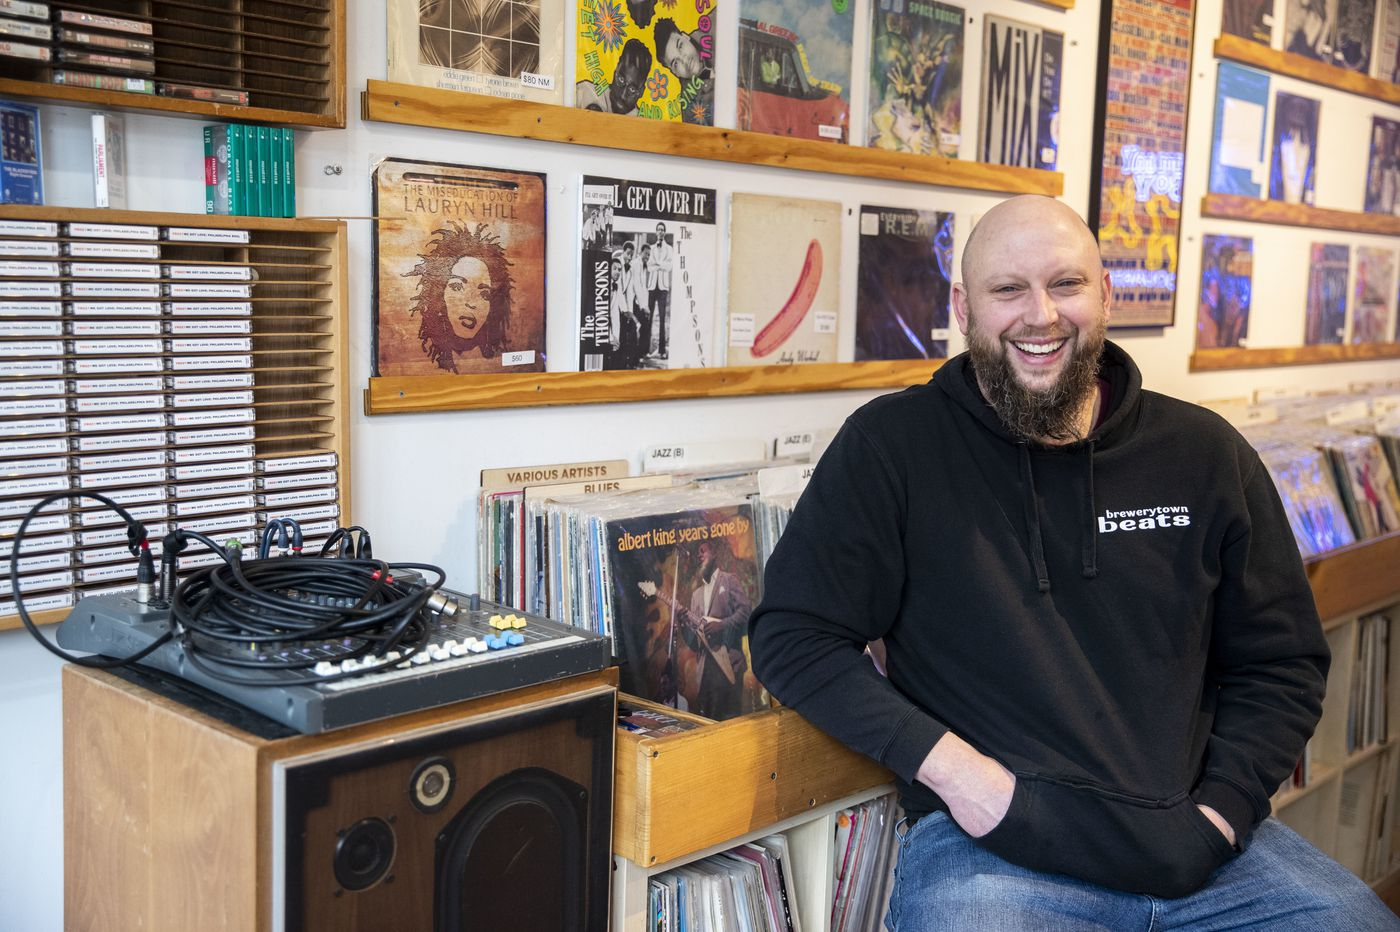 'Philadelphia is the city that sleeps on itself': How a Brewerytown record store owner is shining a light on our overlooked musical past